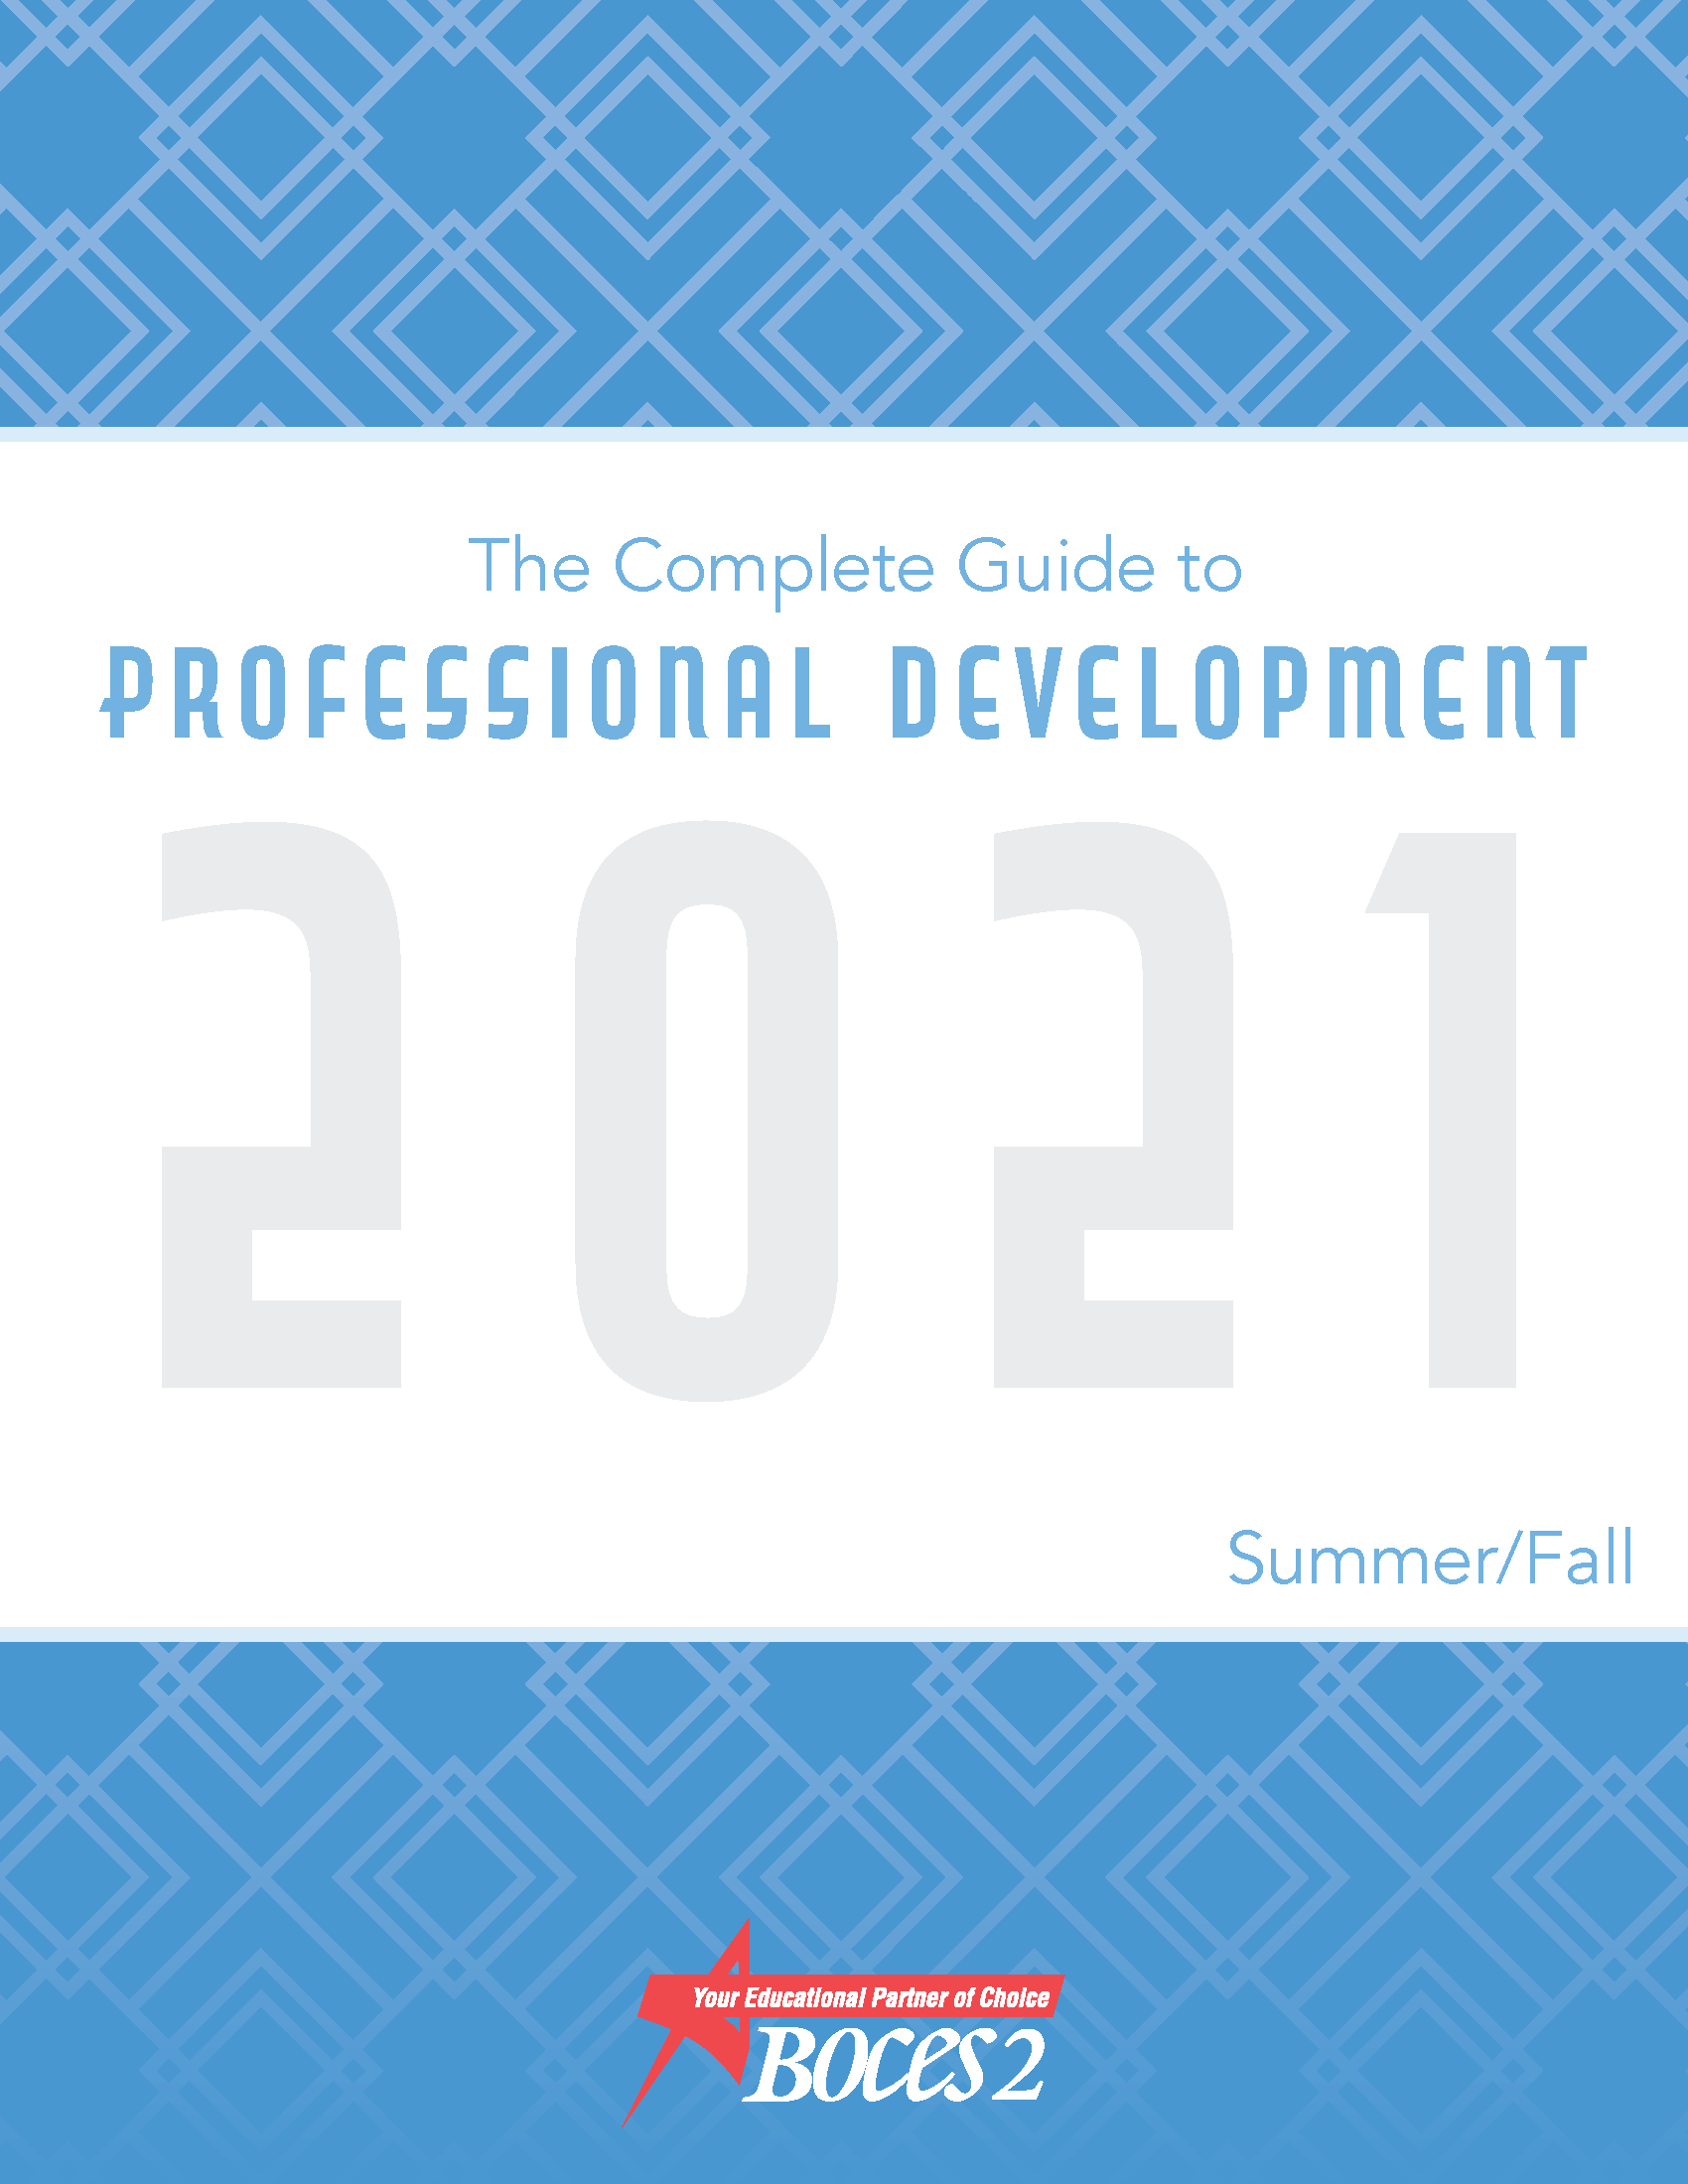 Cover of the 2021 Professional Development Guide